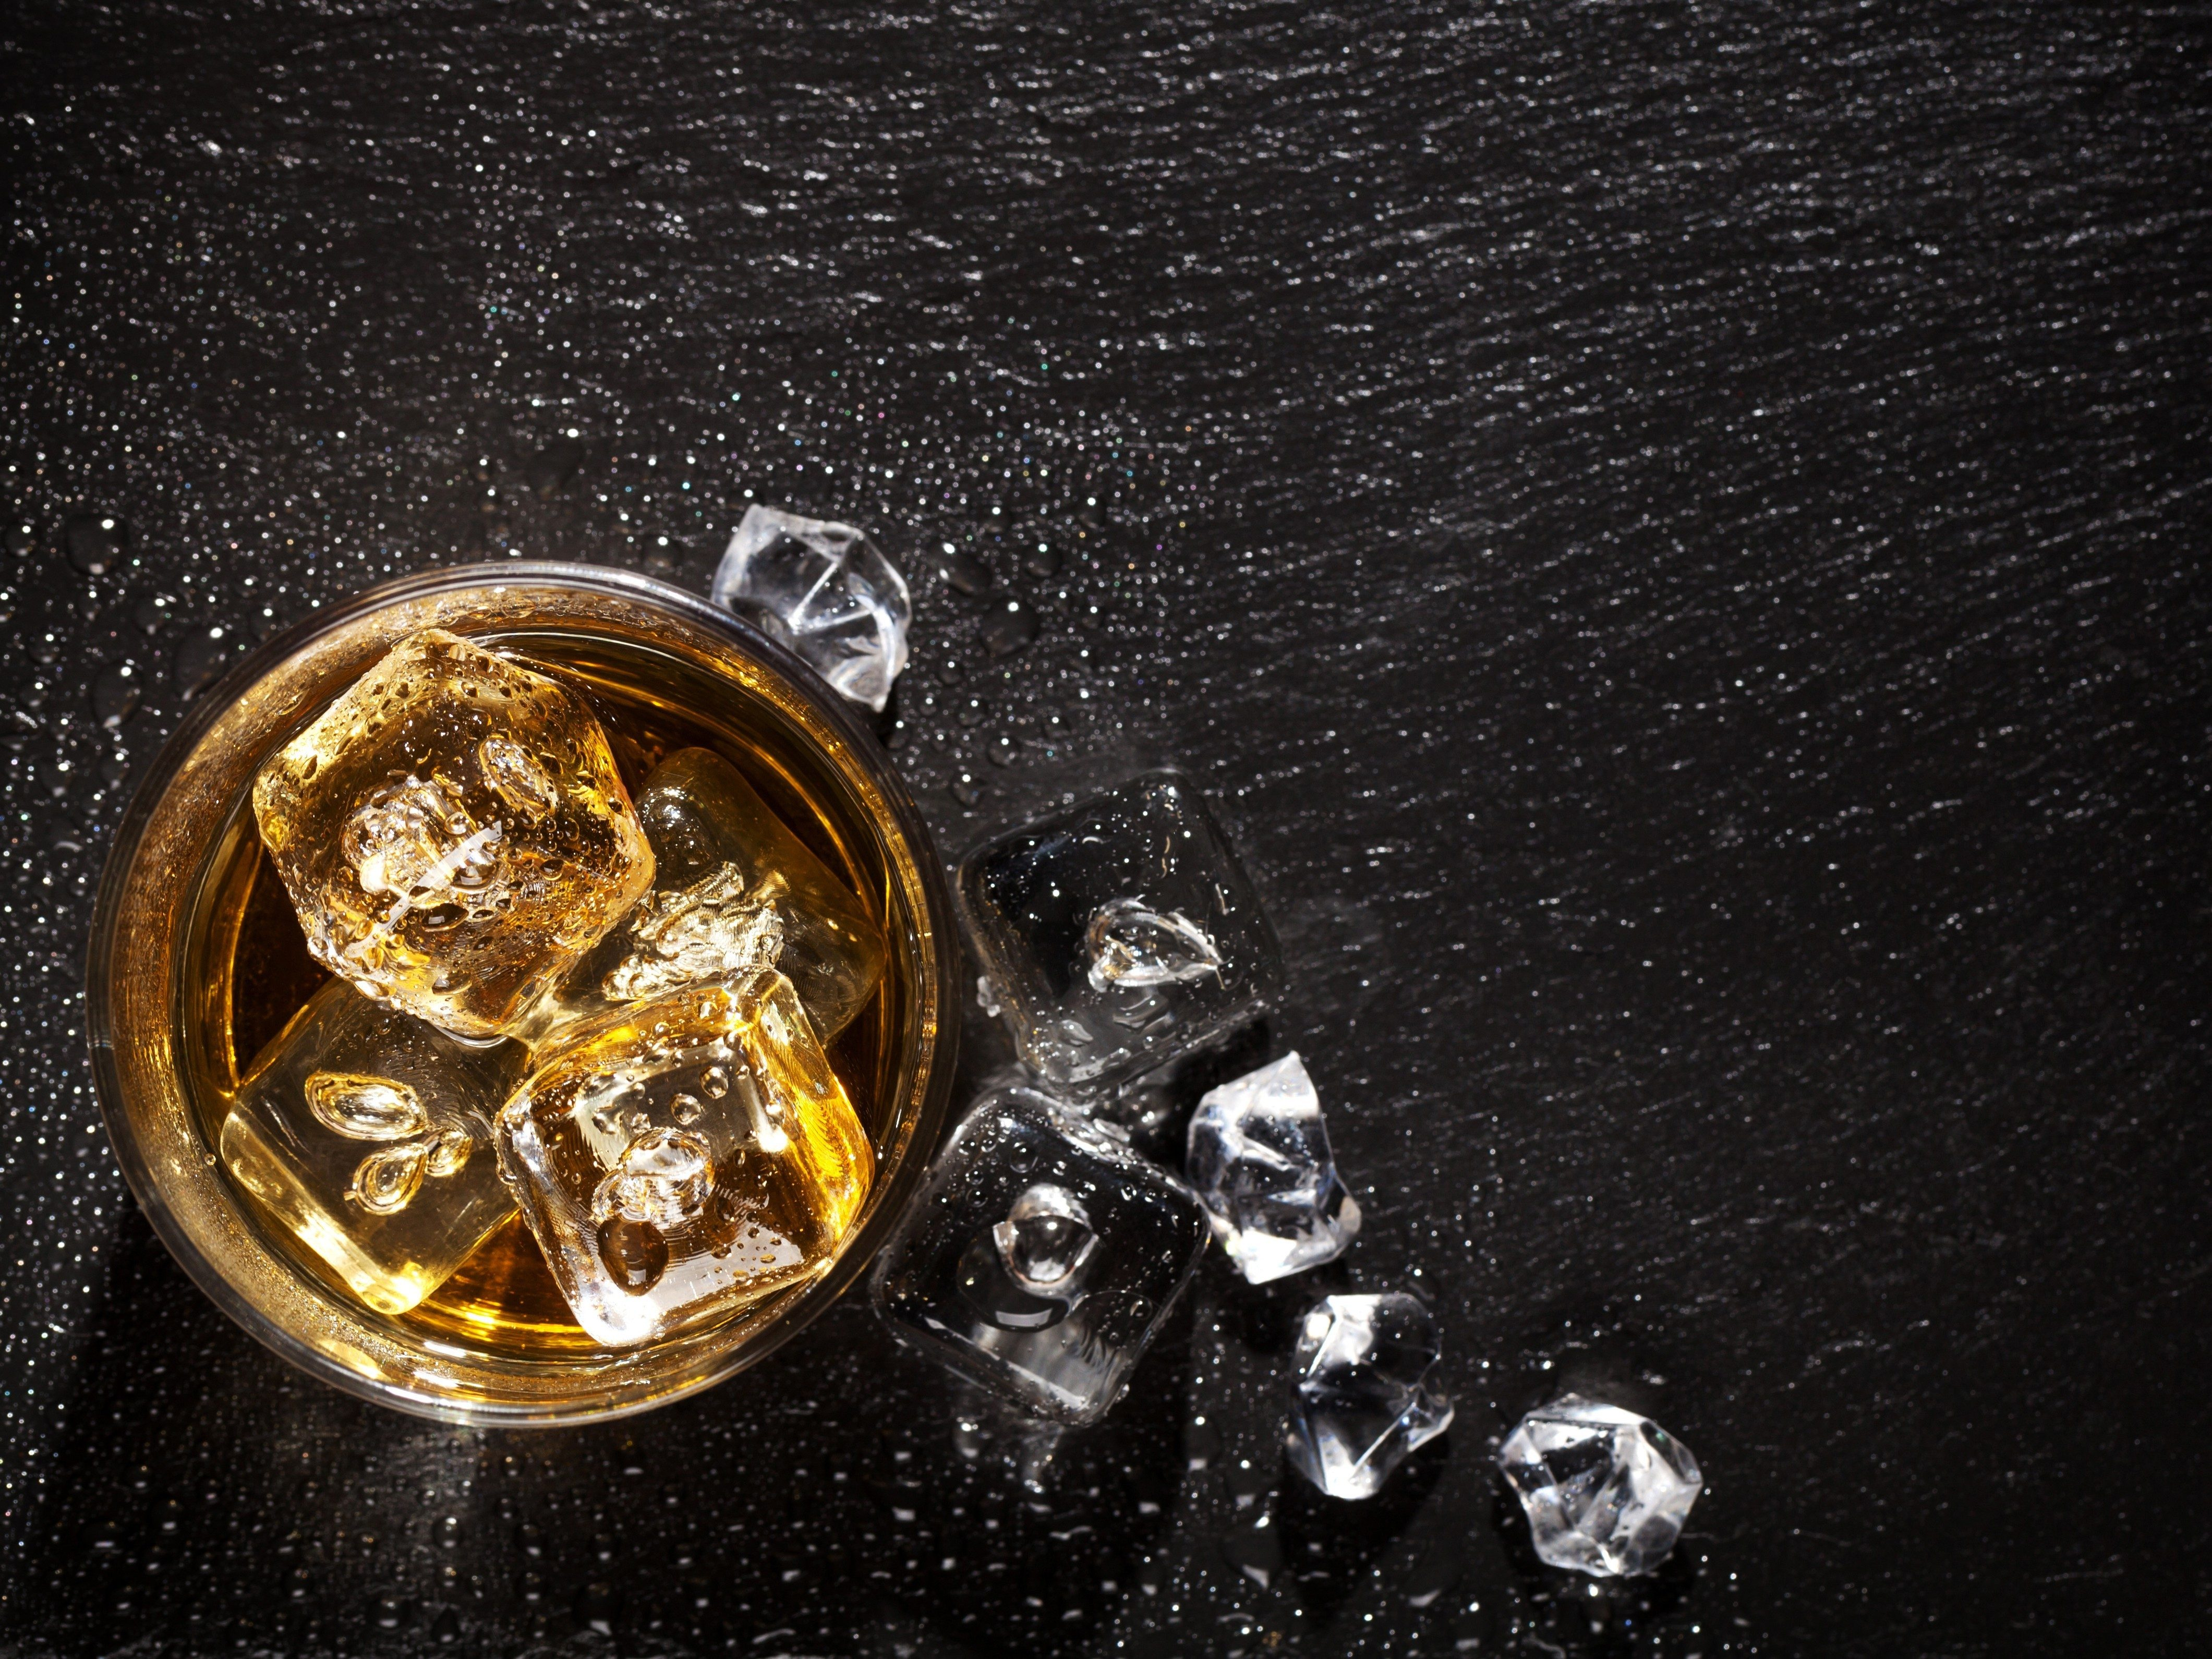 1. Whisky on the rocks is perfectly acceptable.